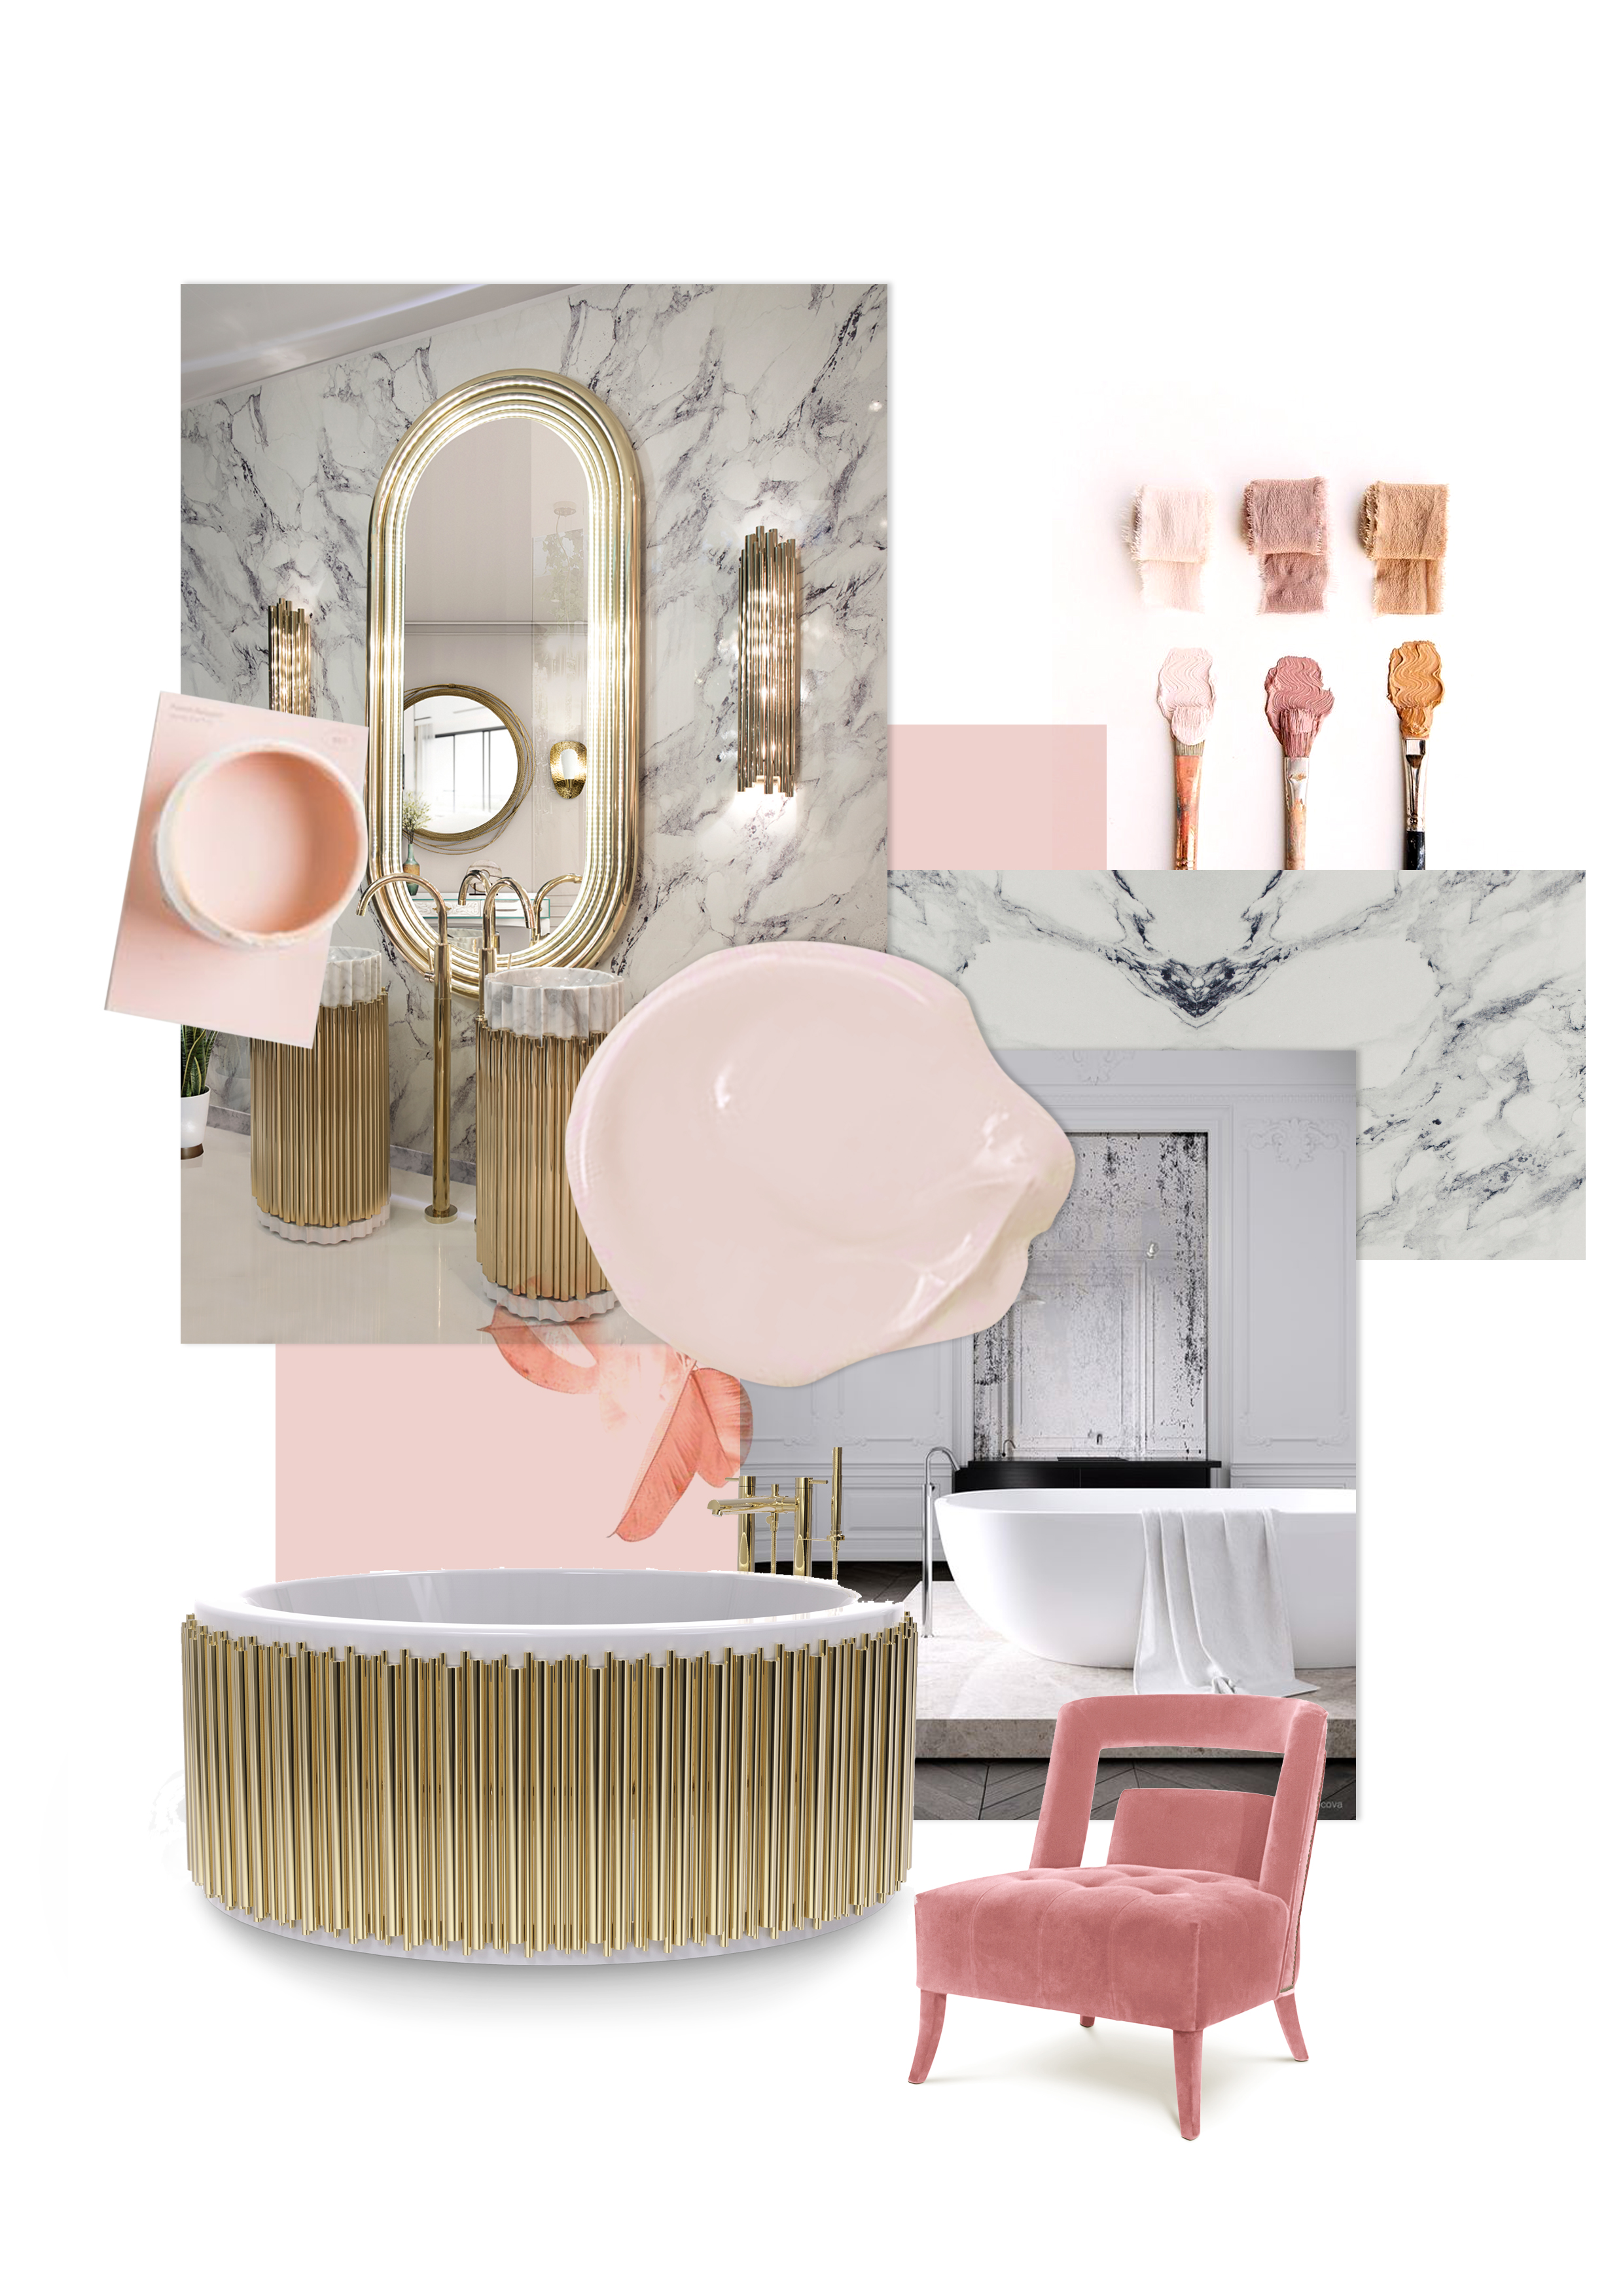 5 Inspirational and Colorful Moodboards for a Bathroom Makeover moodboard 11 HR